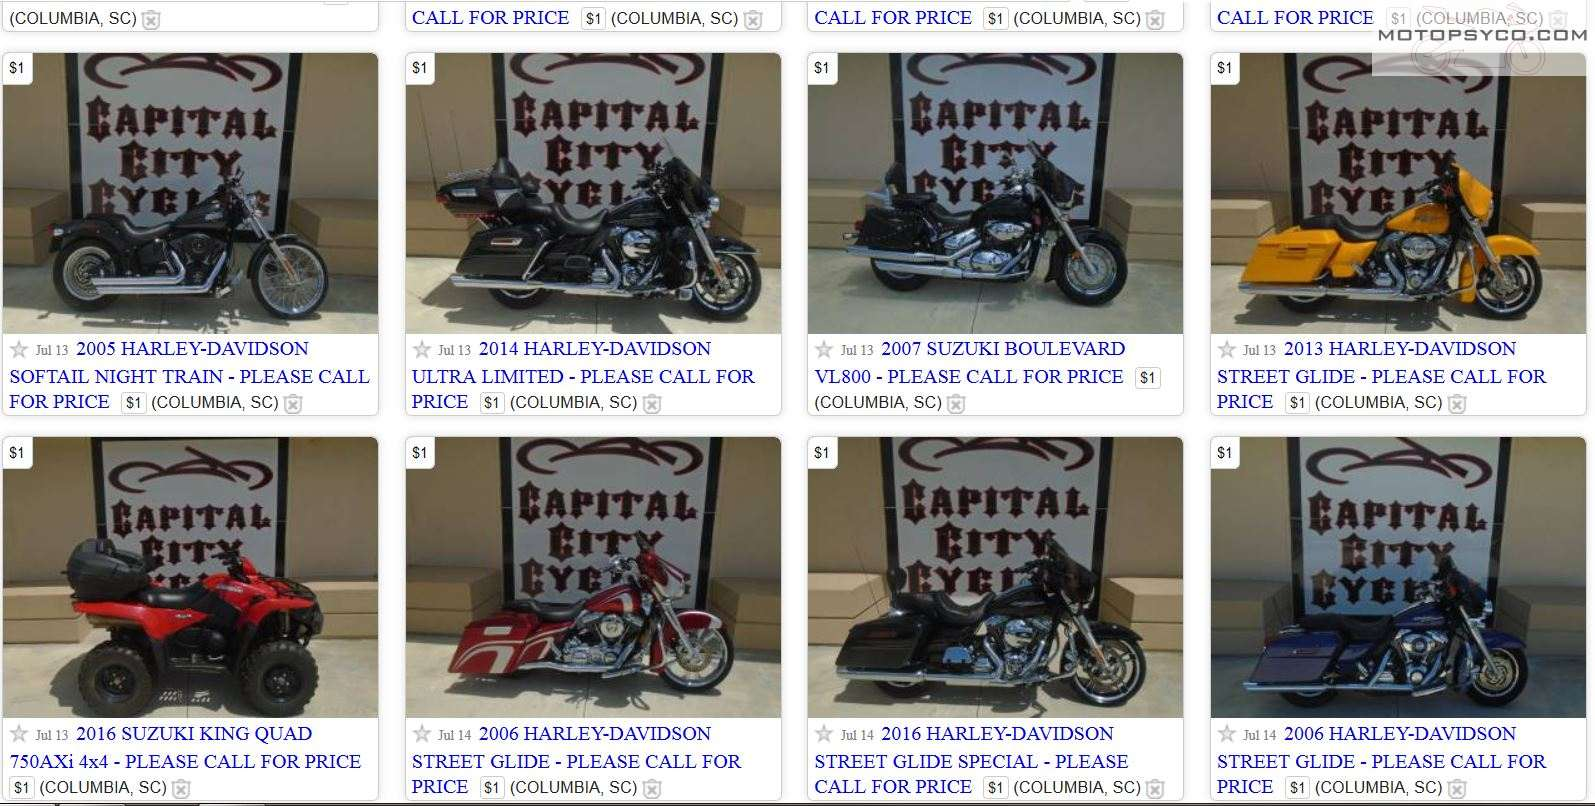 craigslist Archives - Motopsyco's Asylum Crazy about